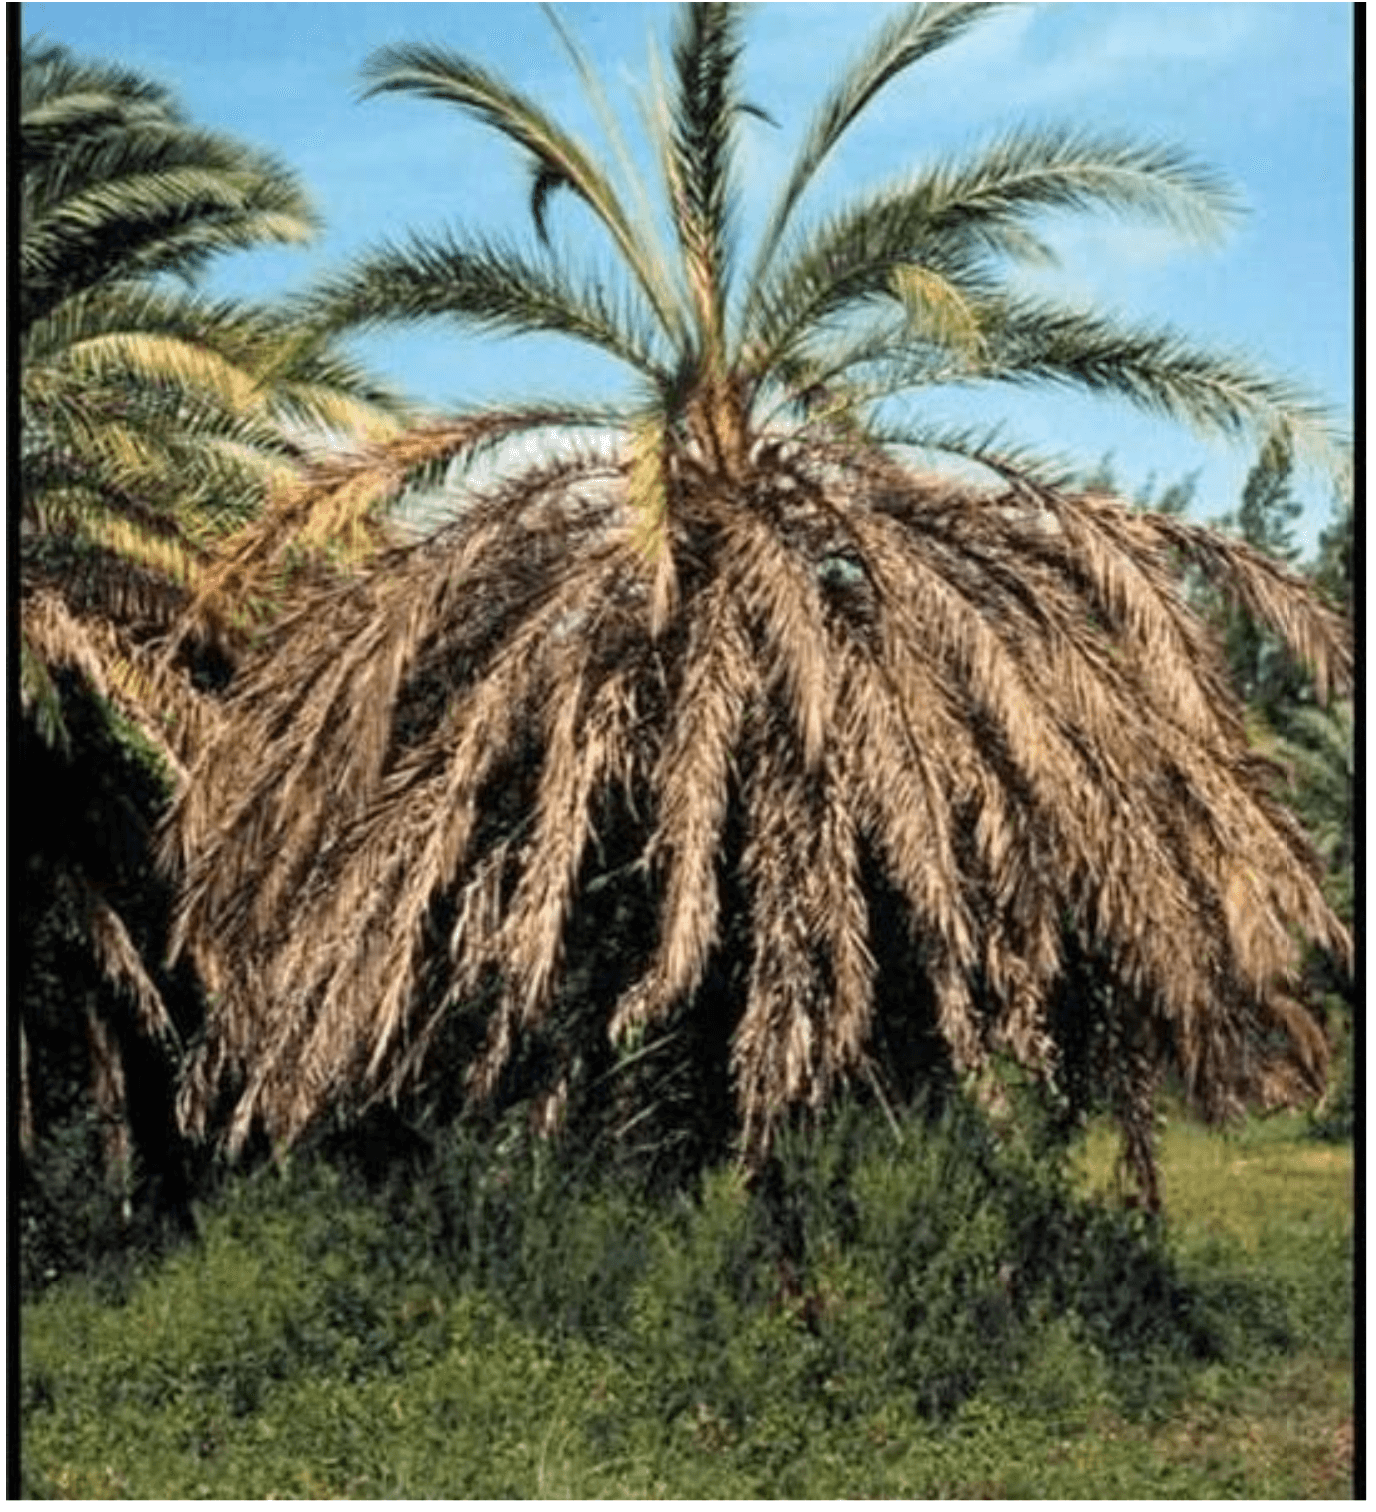 A infected palm tree